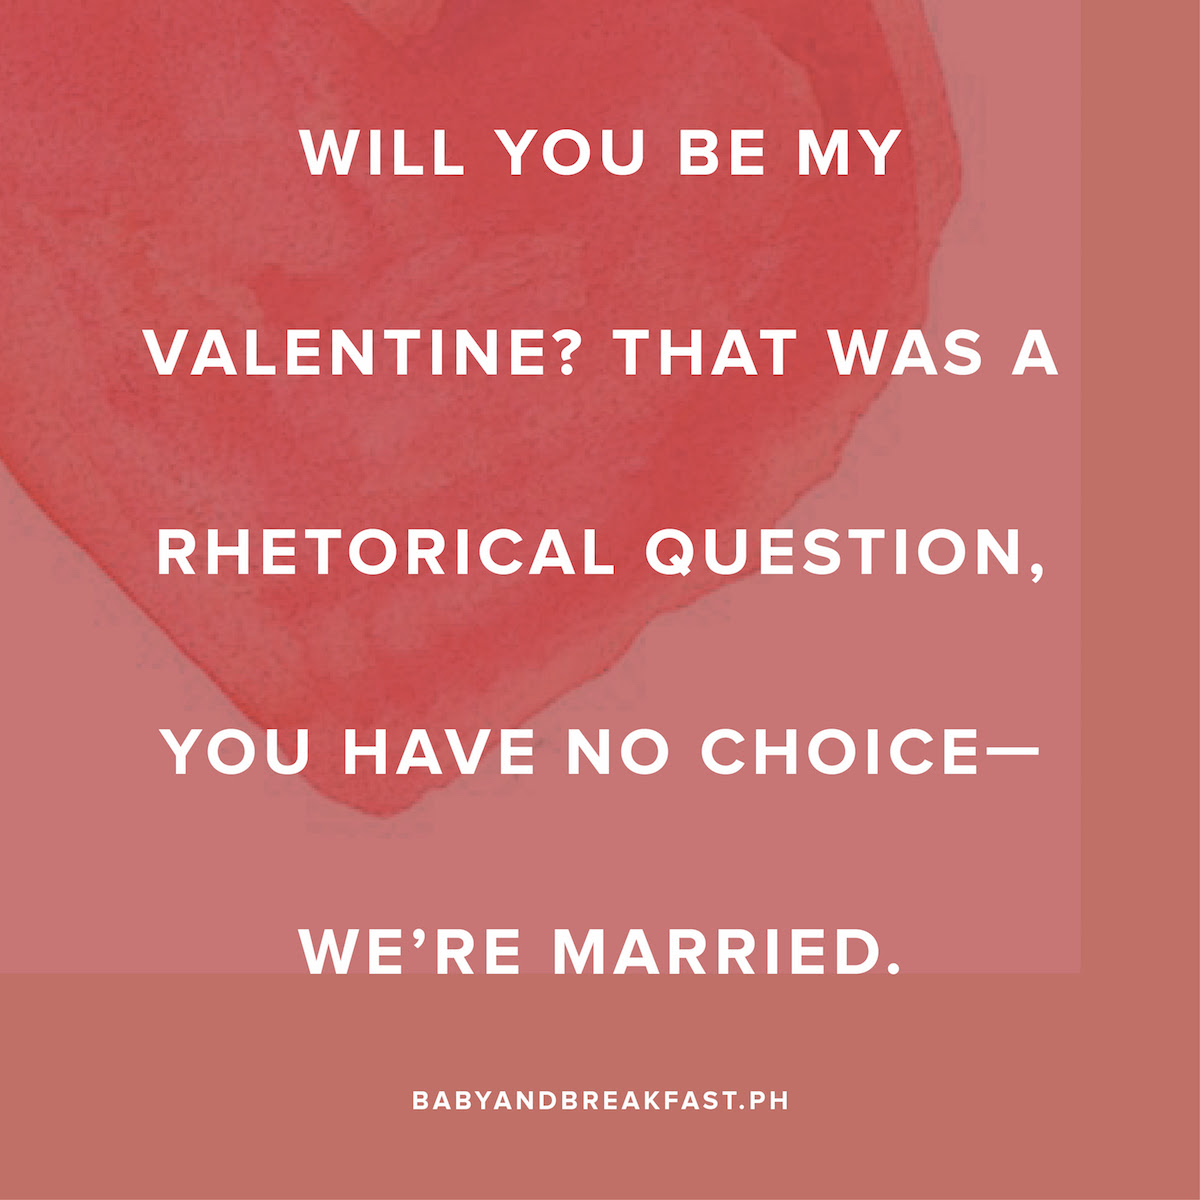 Valentine's Cards for Phones   Philippines Mommy Family Blog